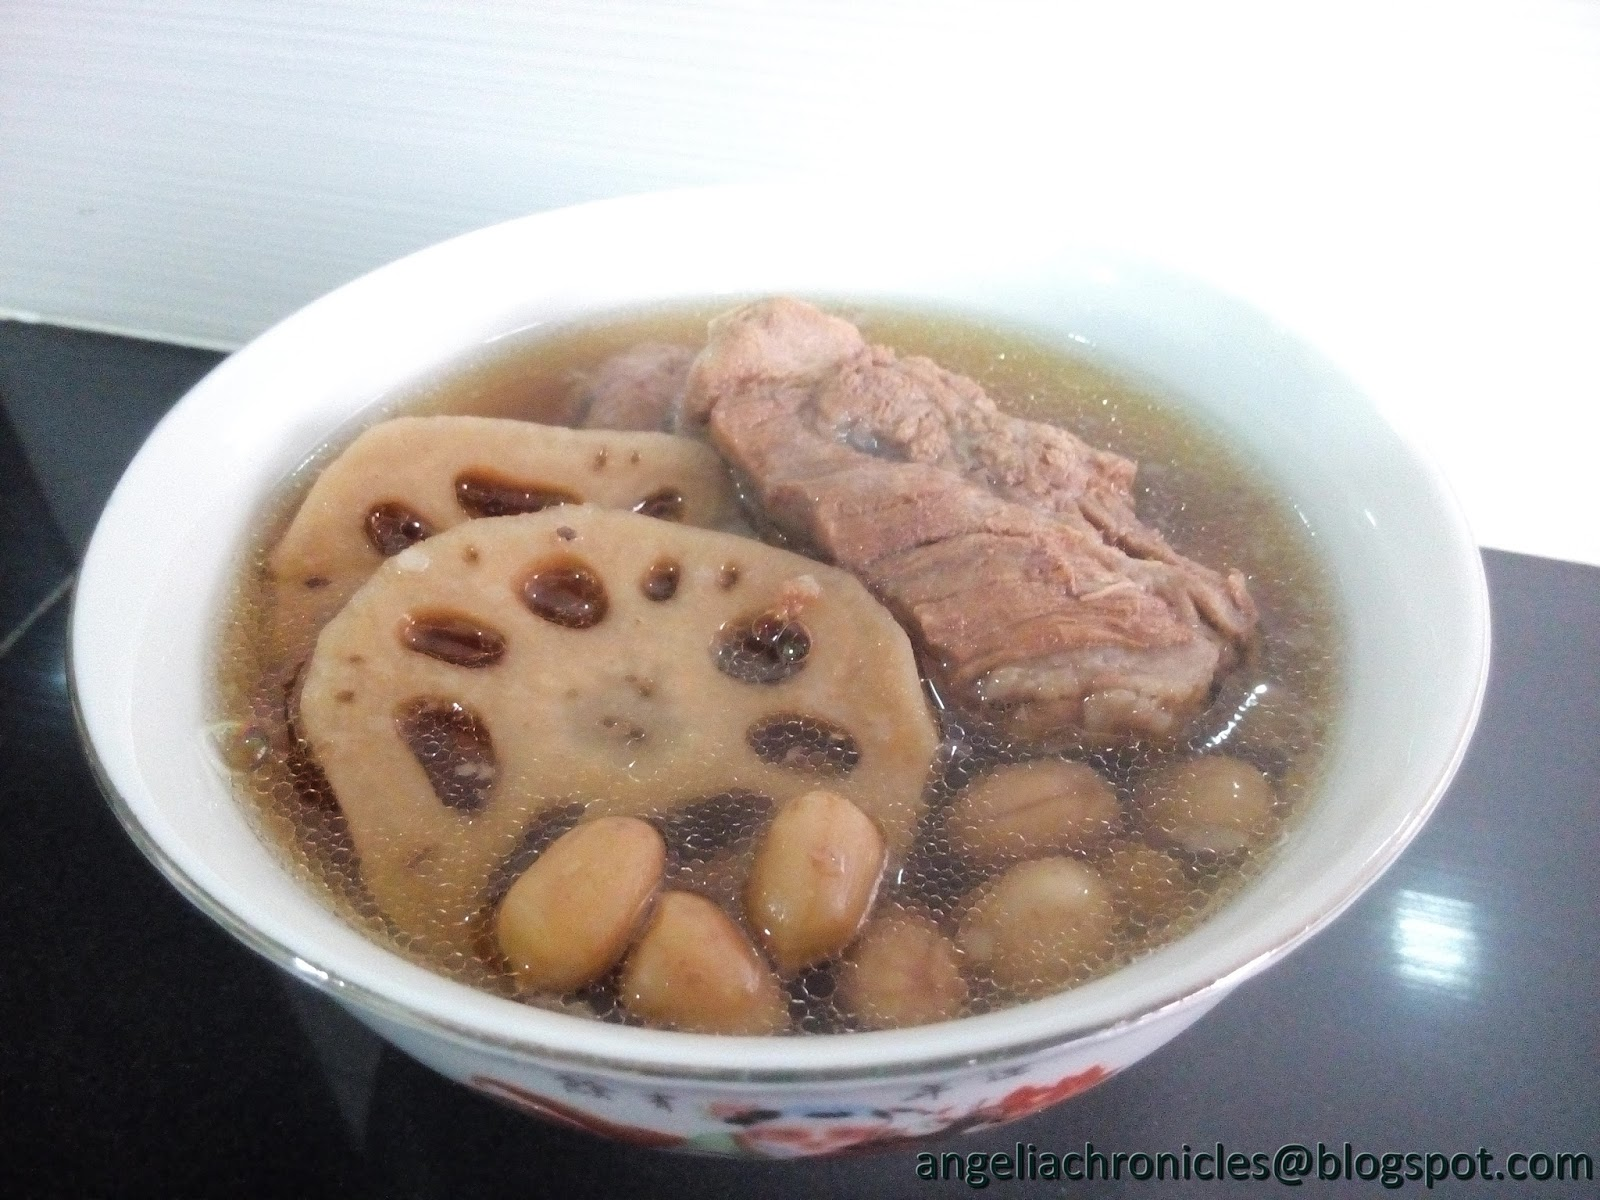 Angelia Chronicles: Lotus Root Soup (莲藕汤)